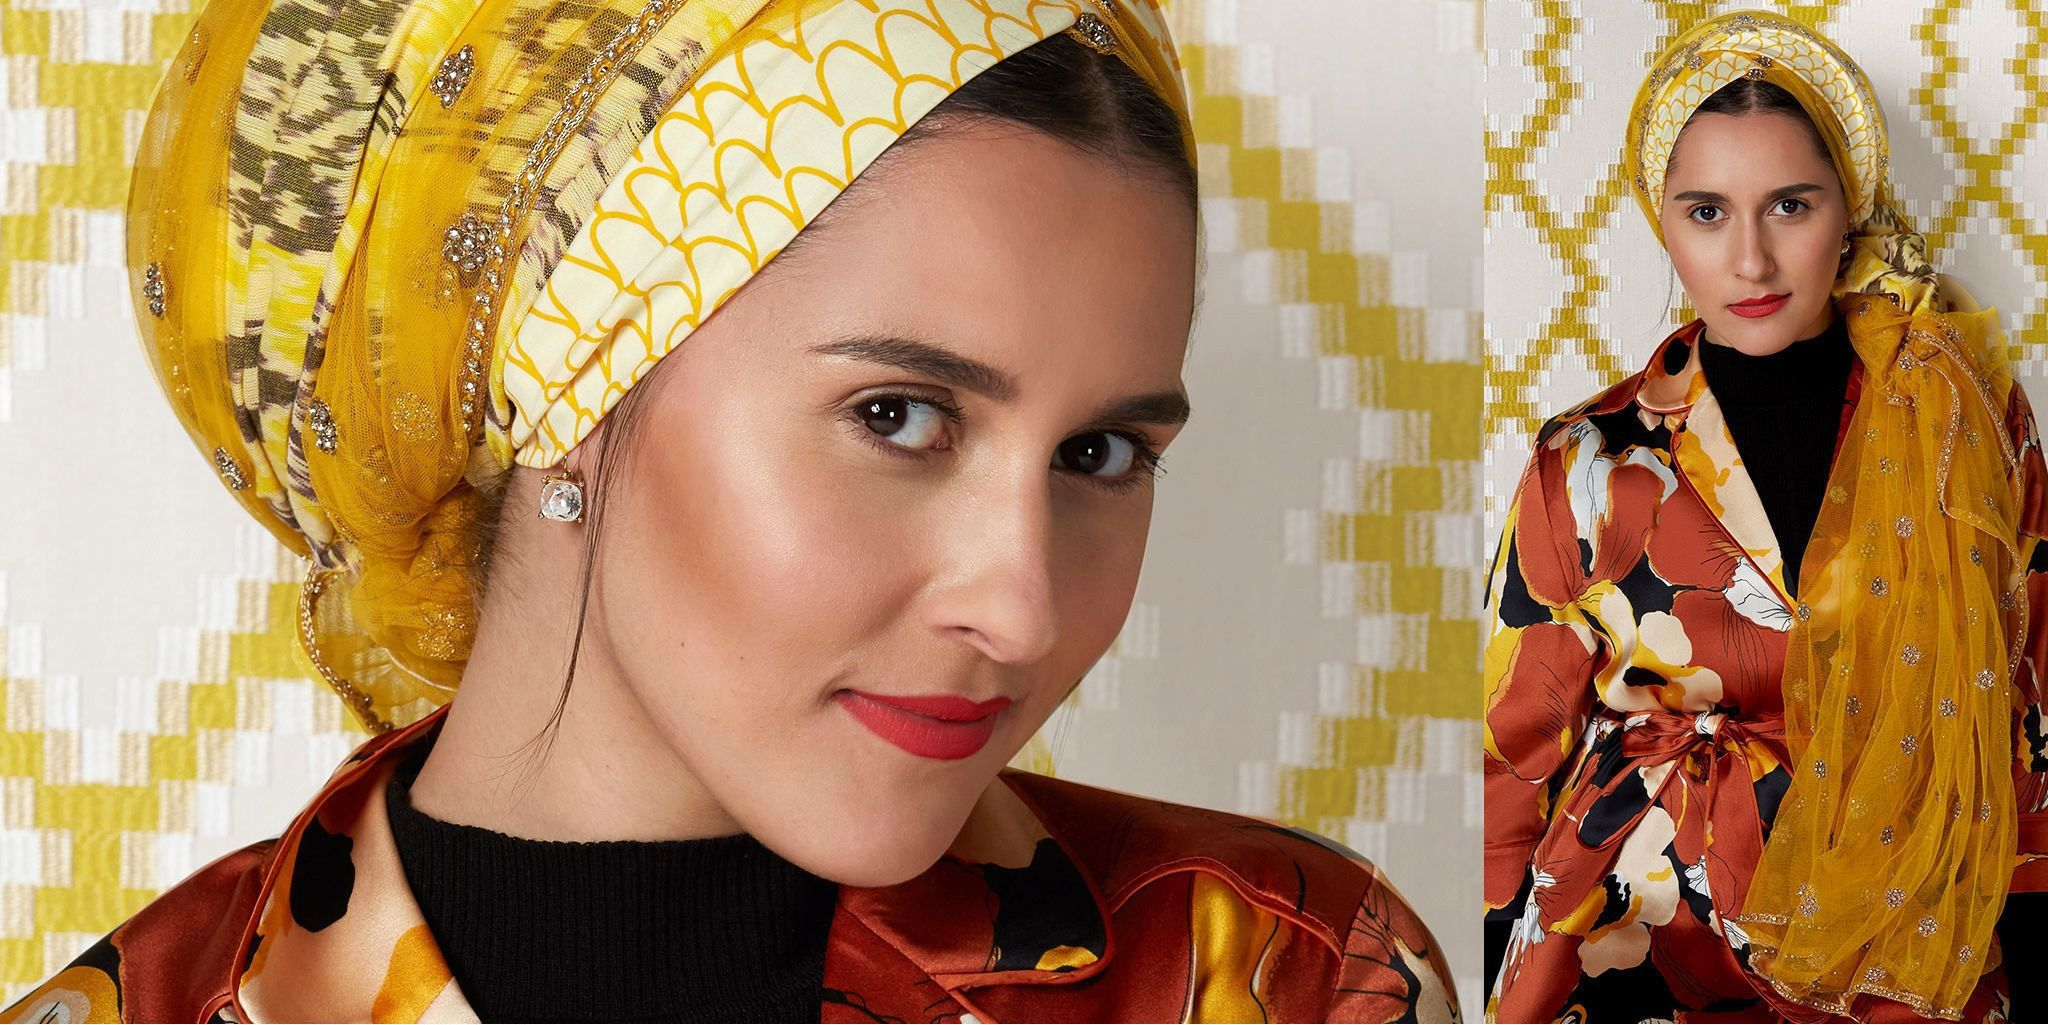 Why Over 150 Million Watch These Hijabi Beauty Influencers